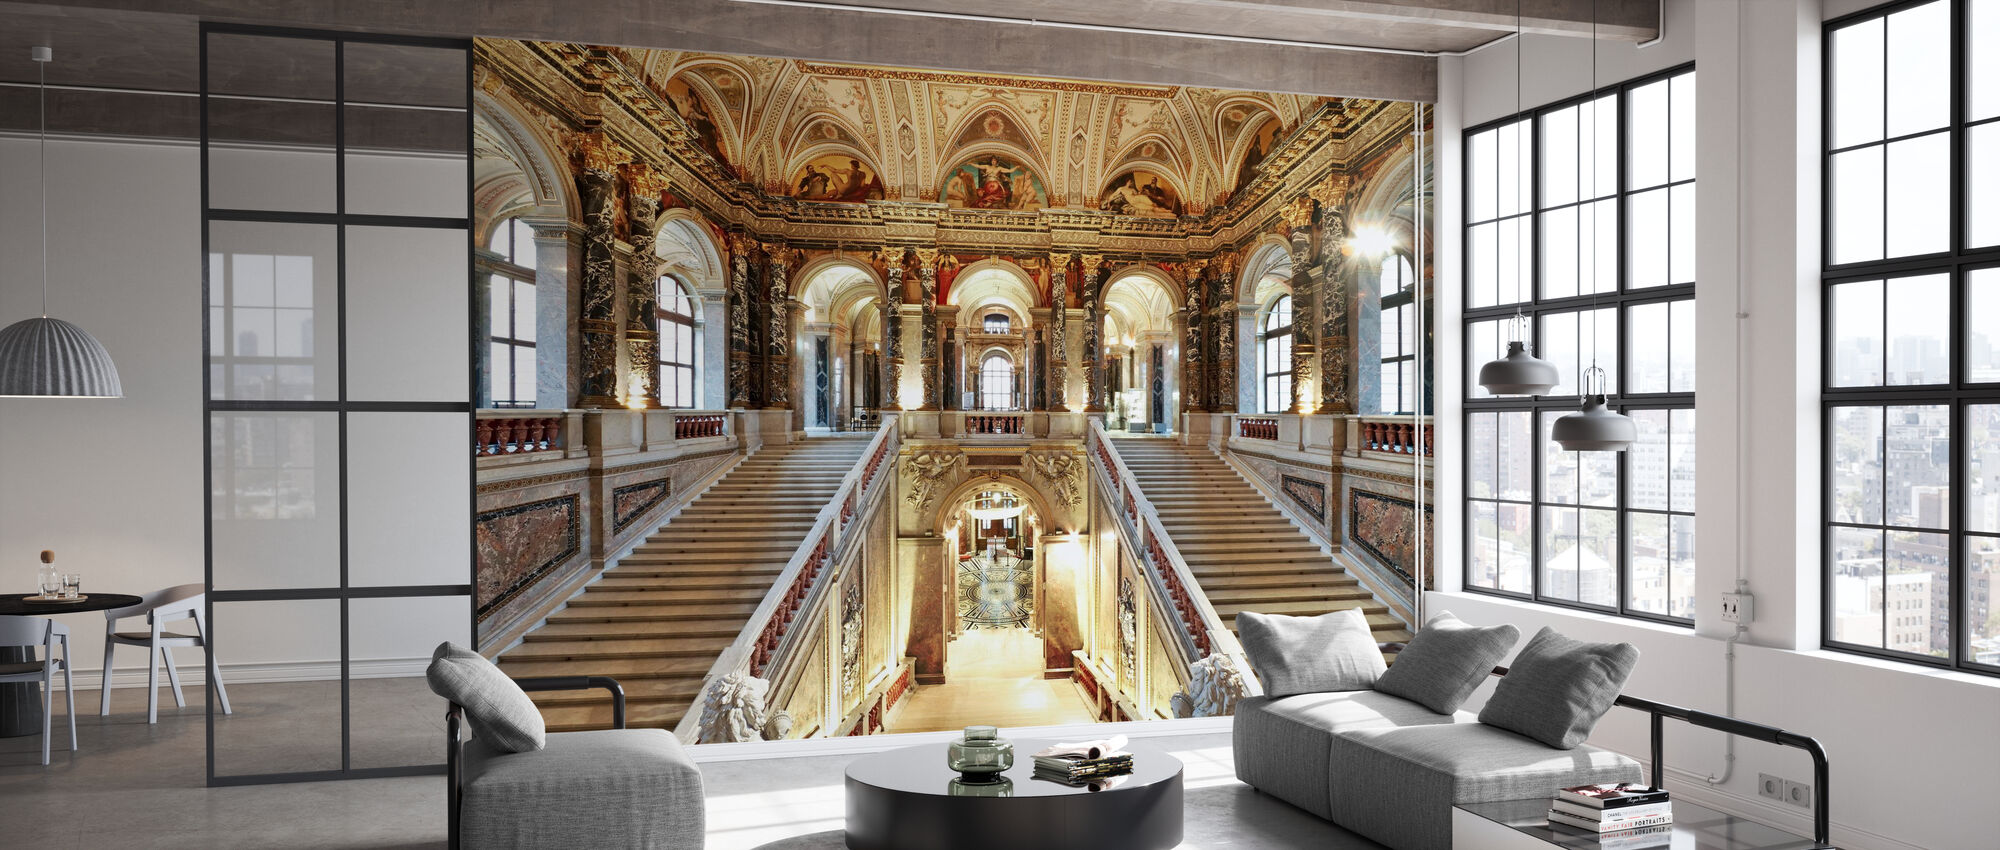 Palace Staircase - Wallpaper - Office